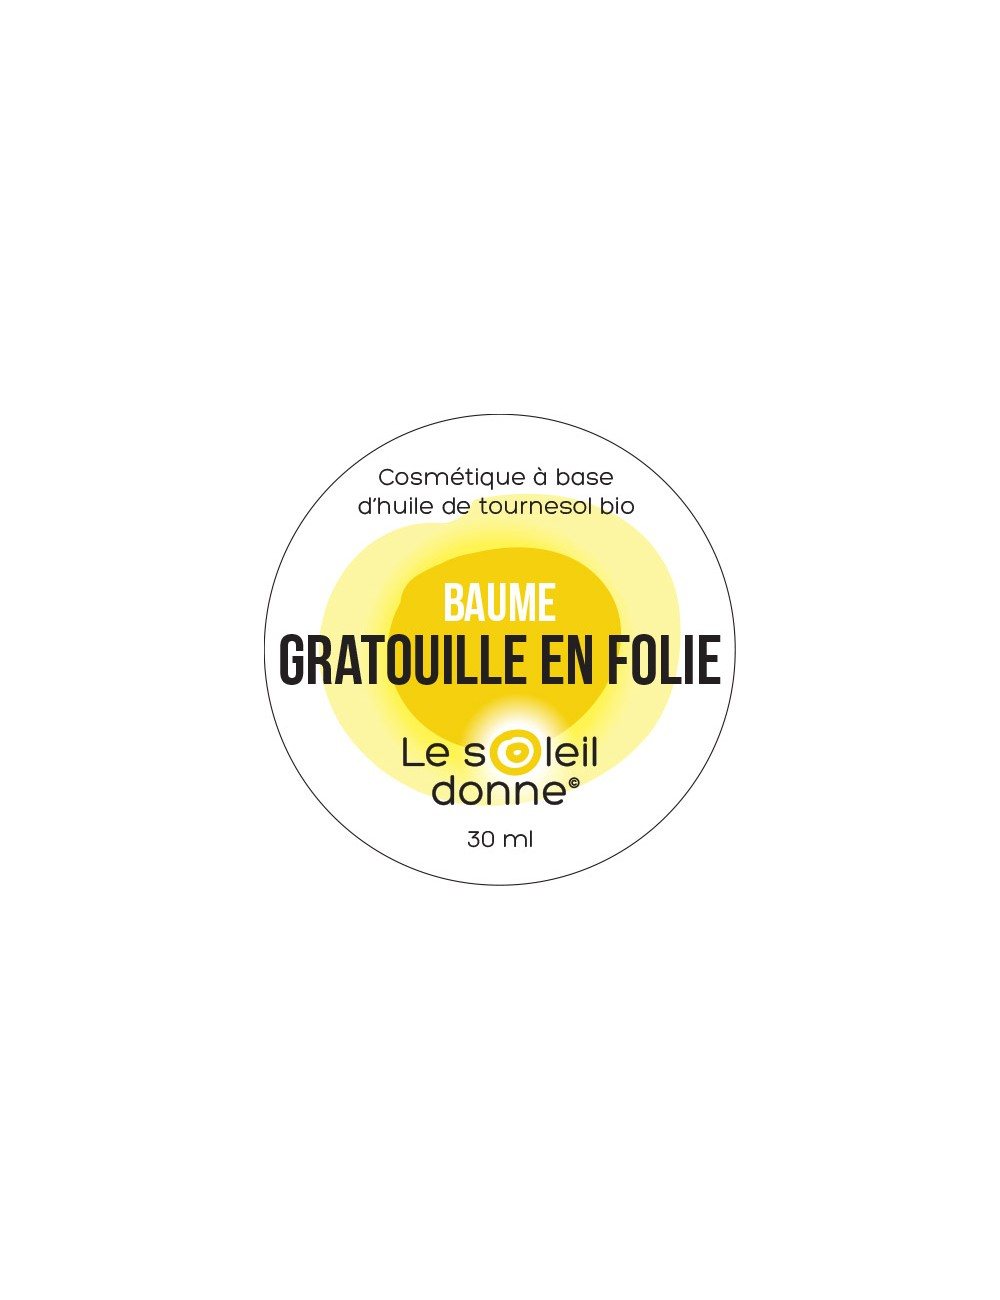 Baume Gratouille en folie 30ml